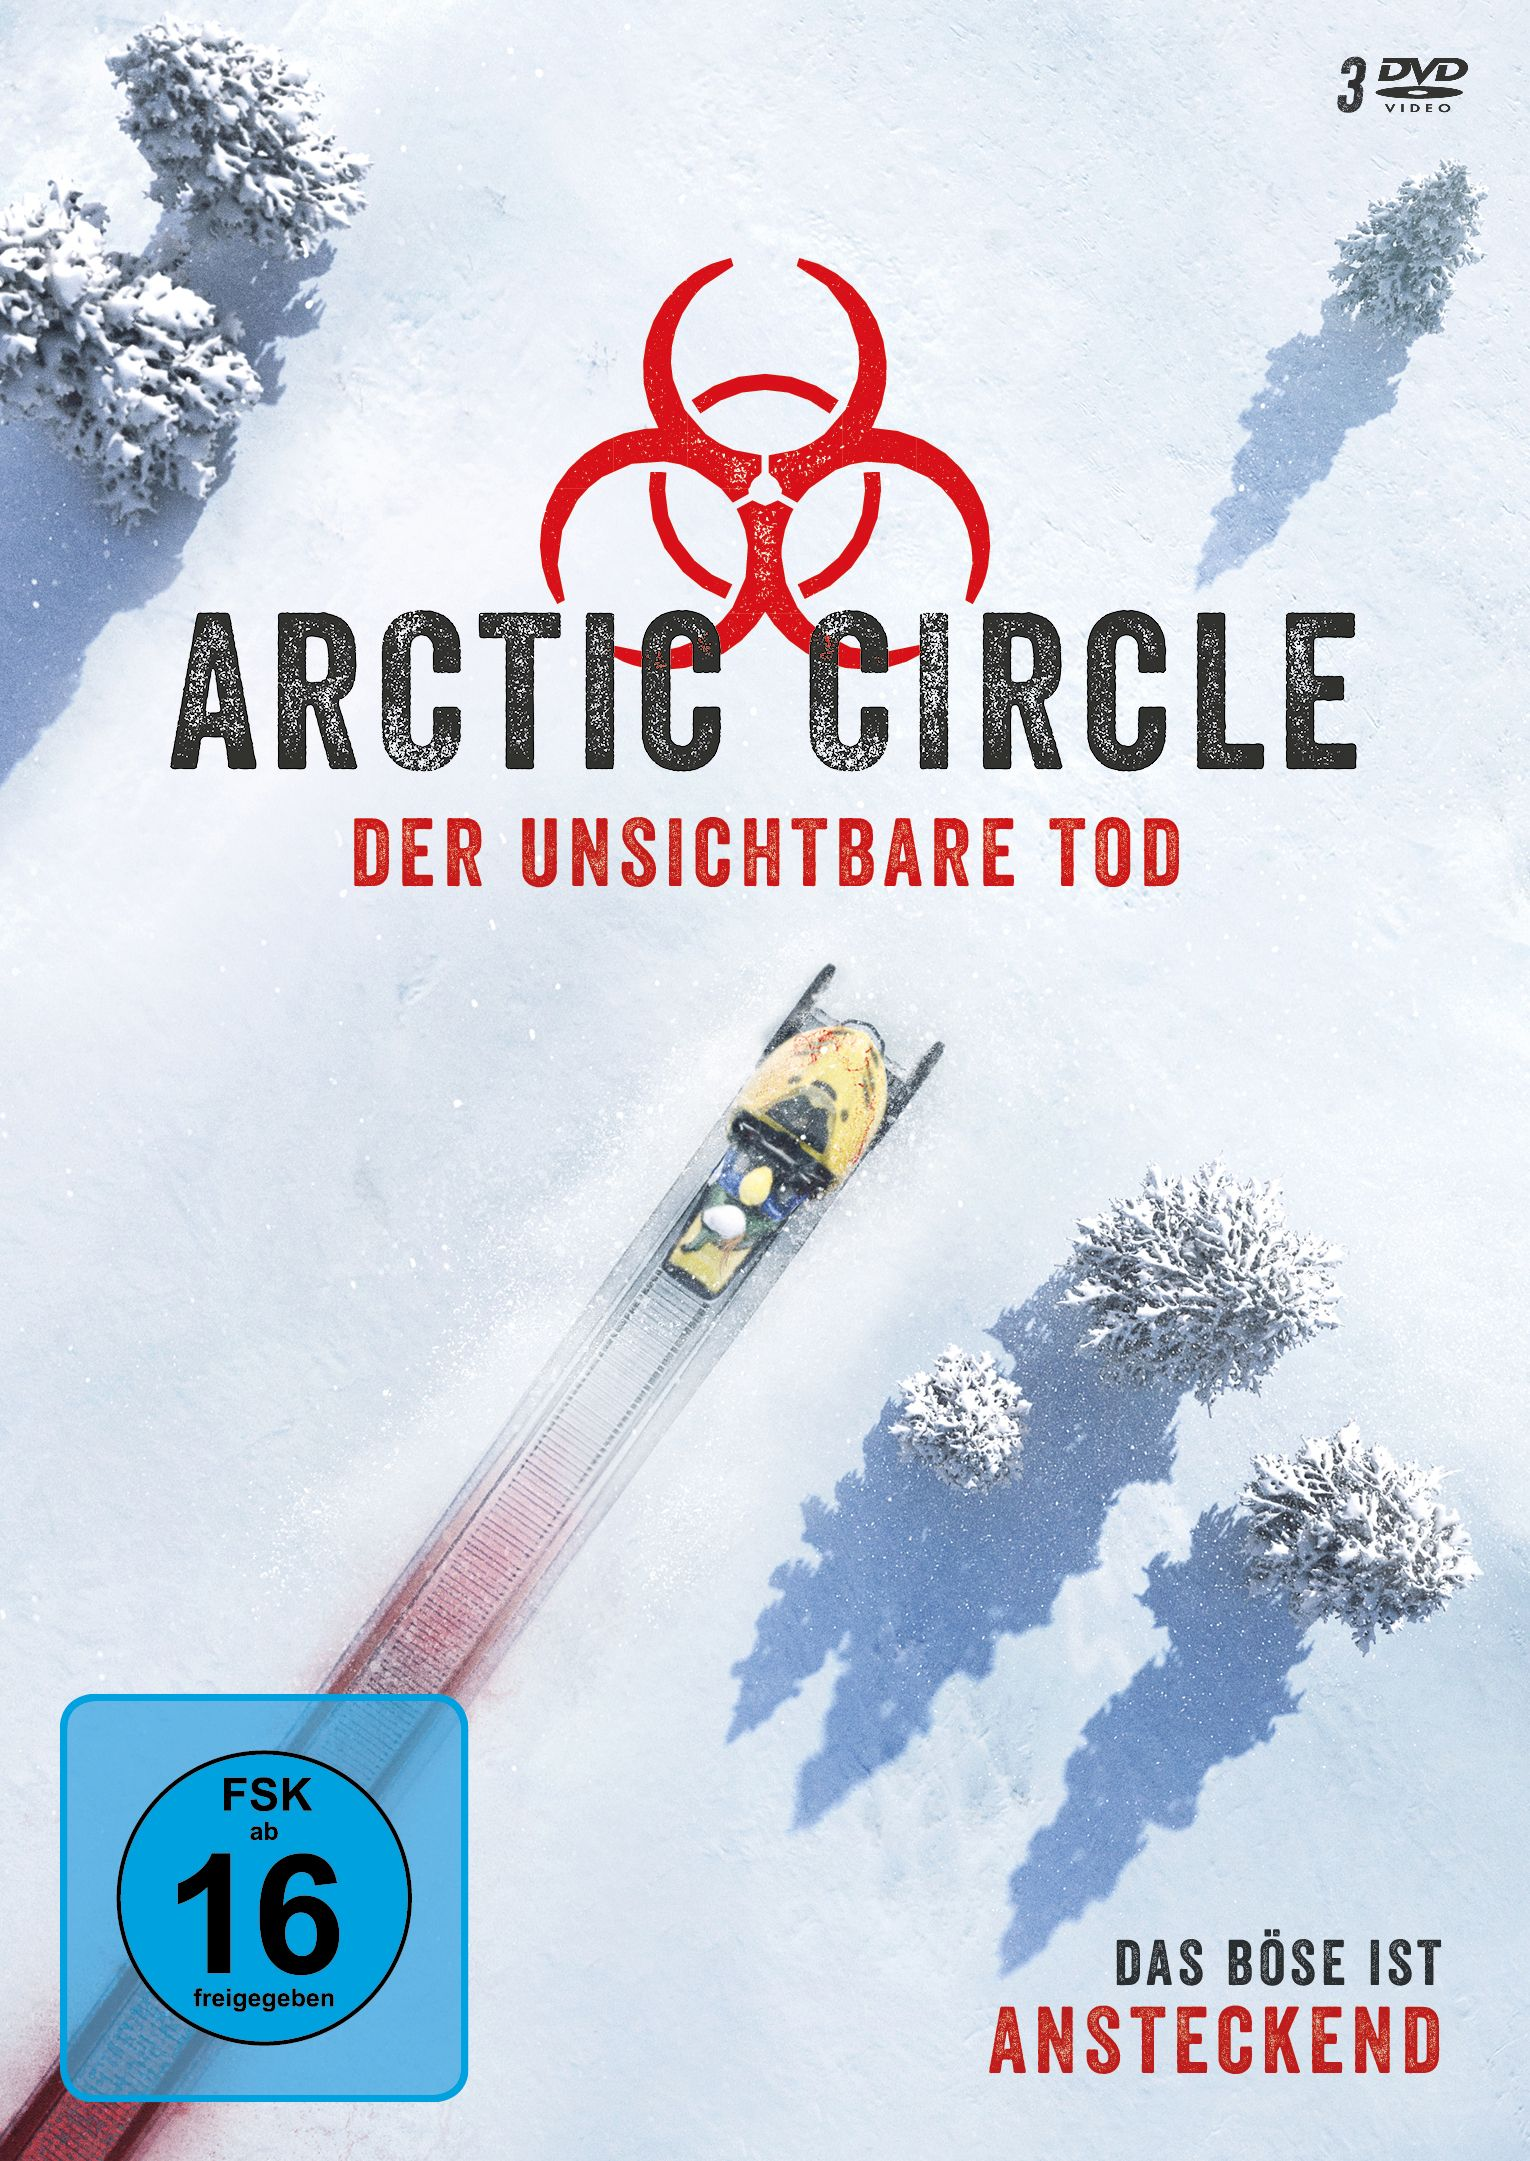 DVD-Cover Arctic Circle